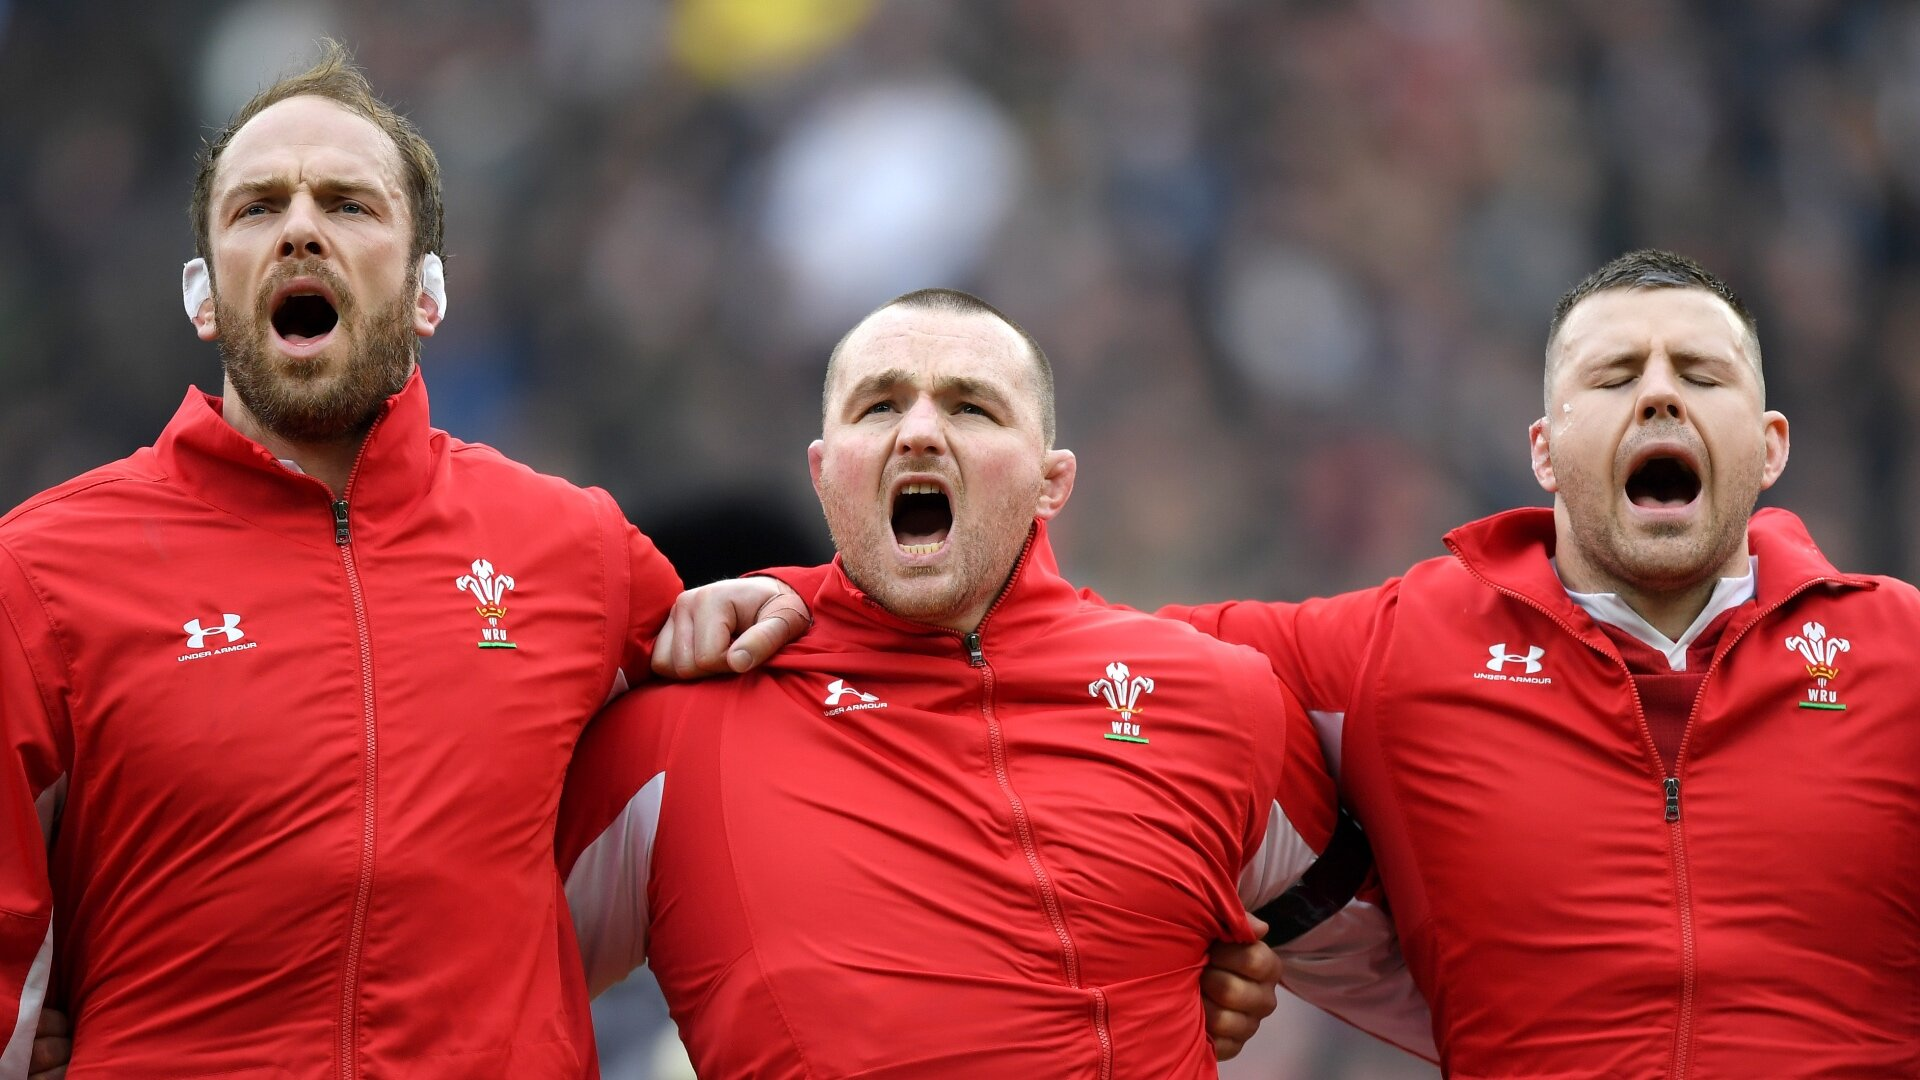 Injuries force Pivac to change two of his 37-man Wales squad, including Ken Owens